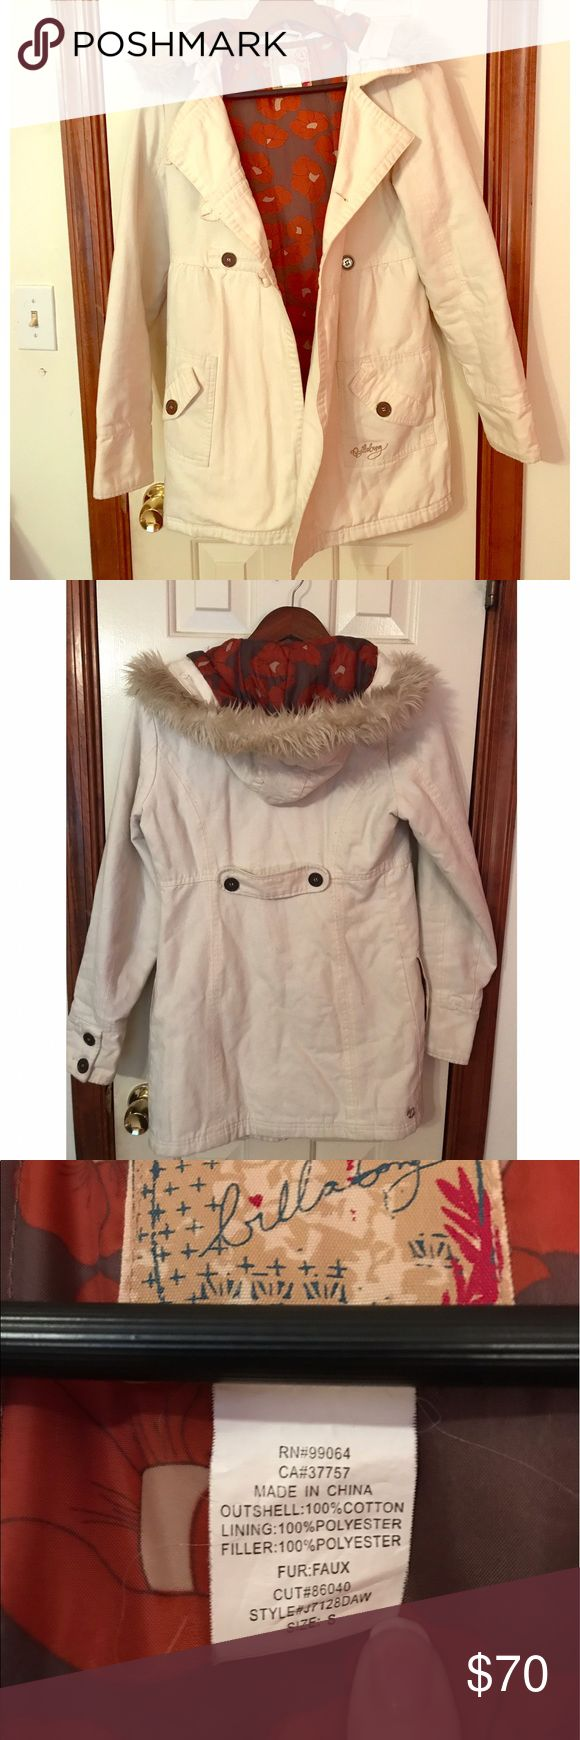 Great winter coat with fur hood and inner lining💯 Billabong winter coat. Has buttons on front and on sleeves. Four different pockets on the outside. Inner lining is soft and makes coat SO warm. Hood can detach by zipper (pictured) Small stain on left sleeve (pictured) Cat hair and wrinkles will come out before sending😬 Billabong Jackets & Coats